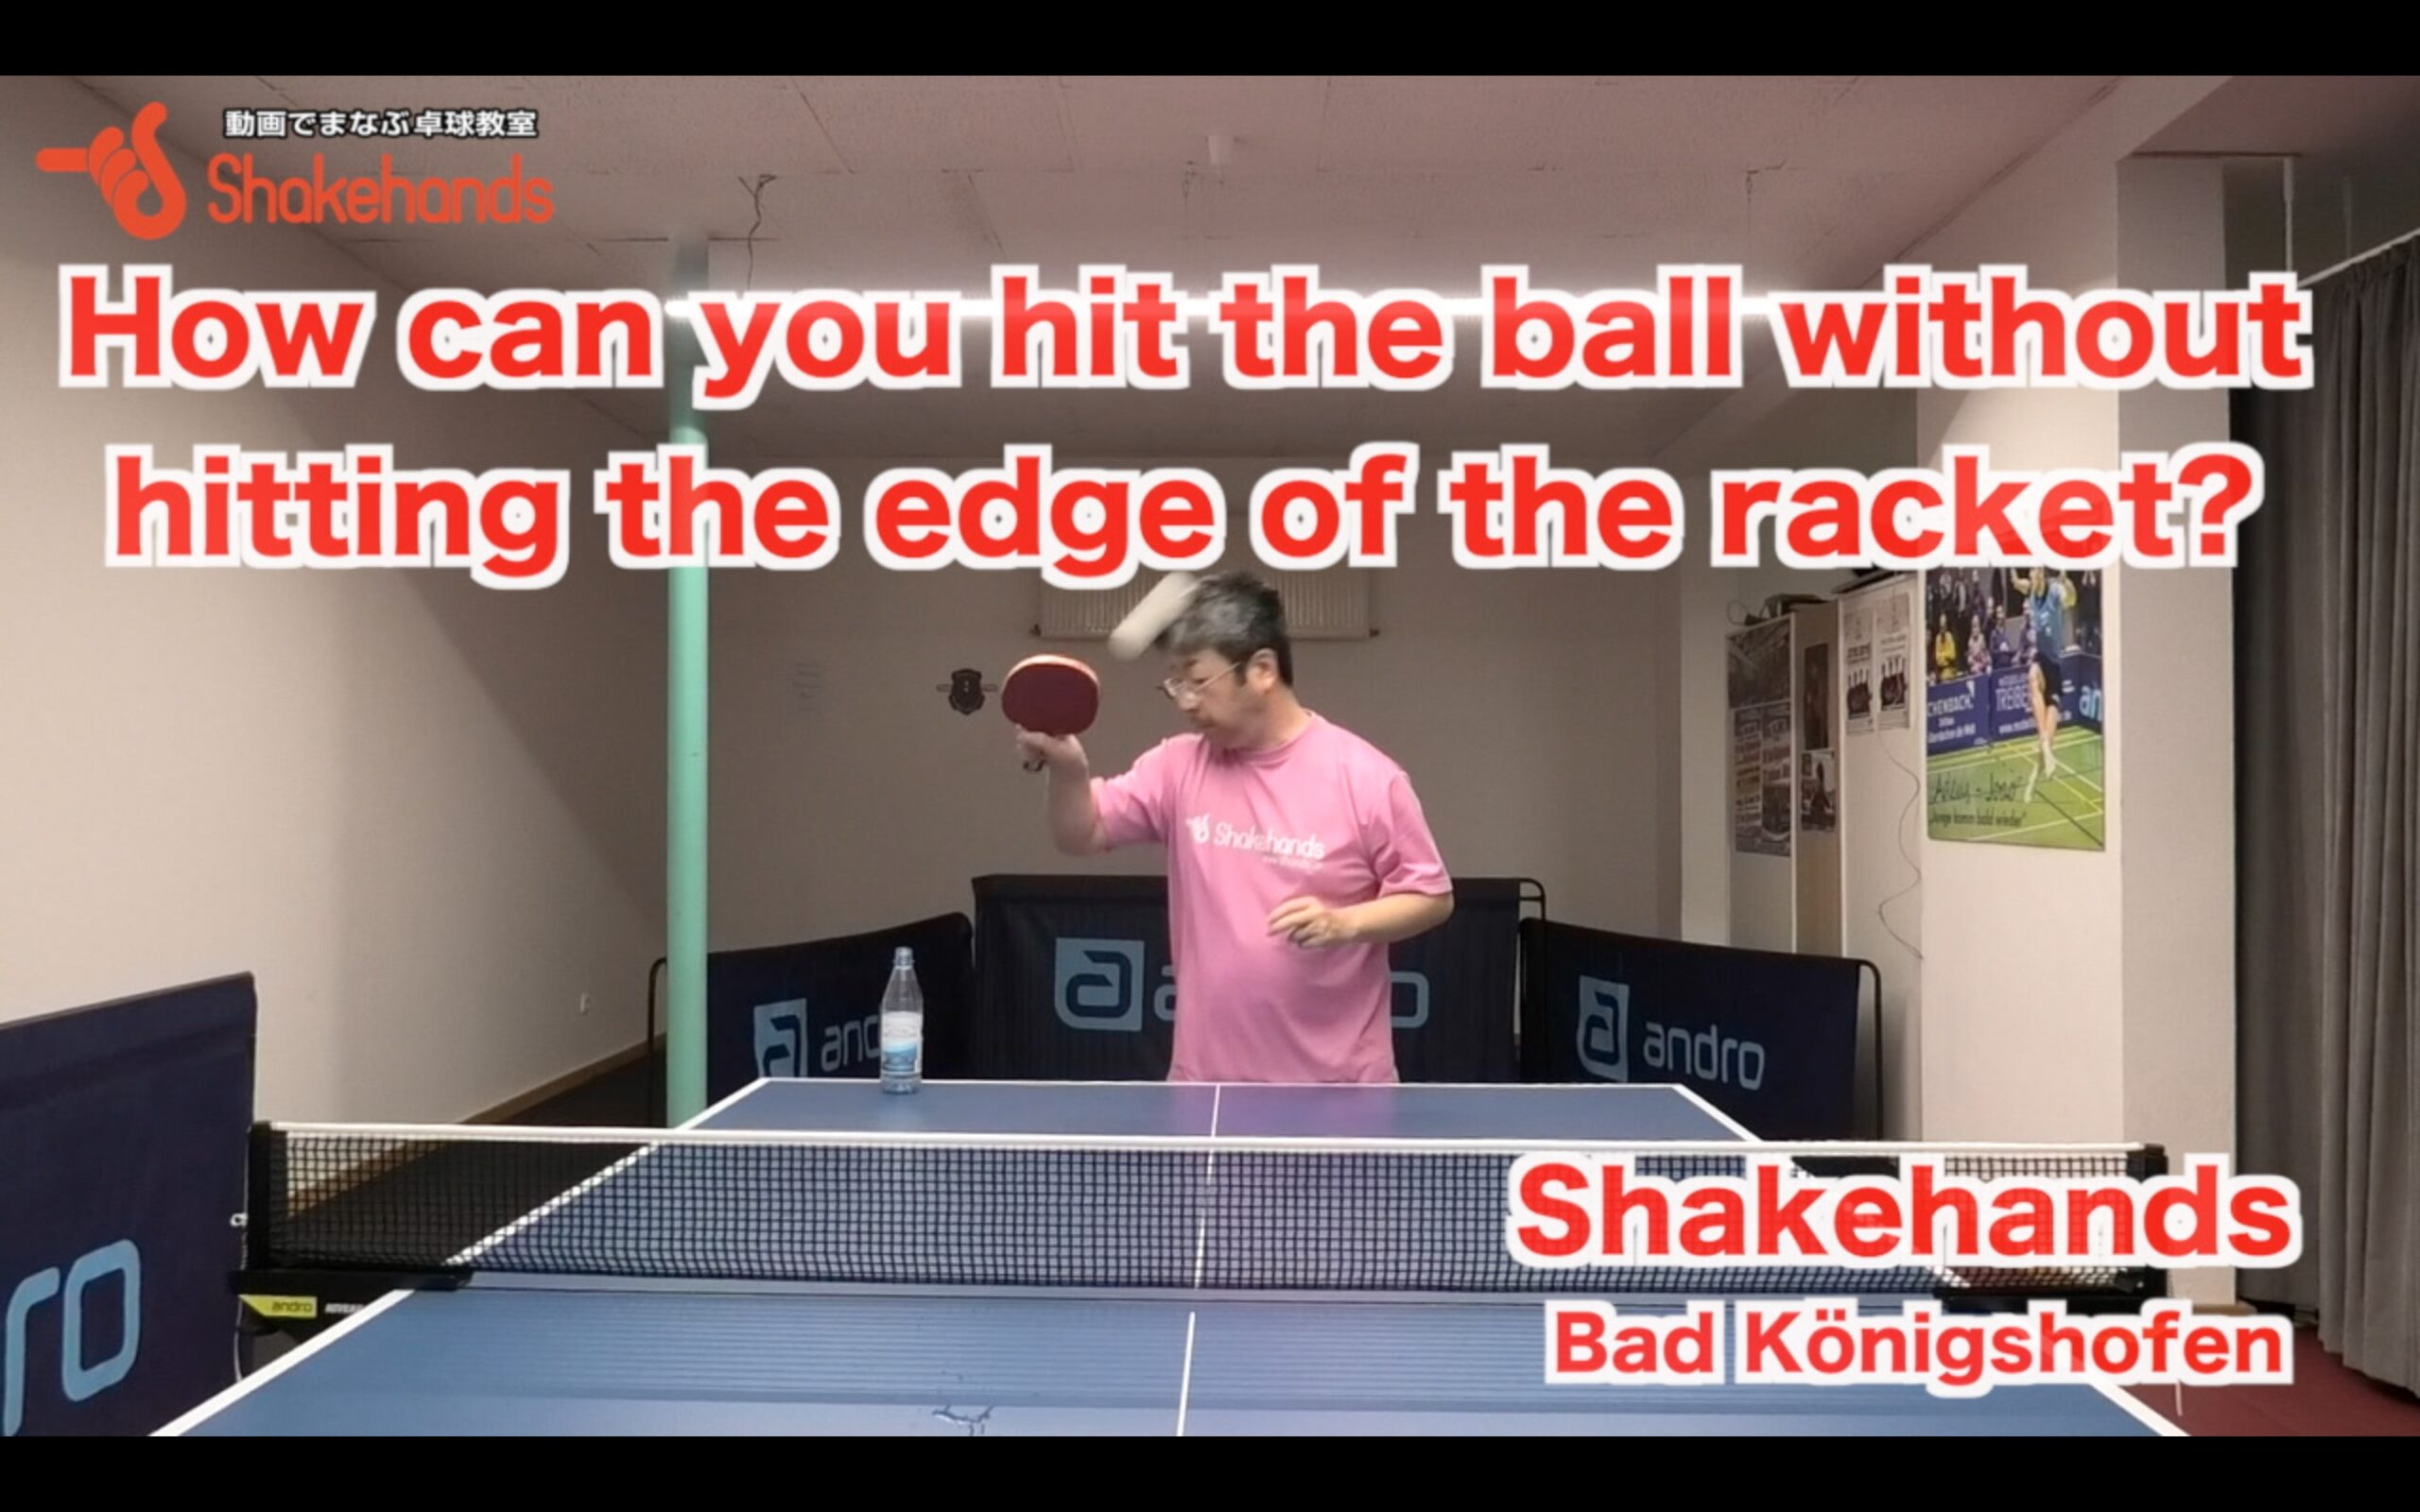 How can you hit the ball without hitting the edge of the racket?